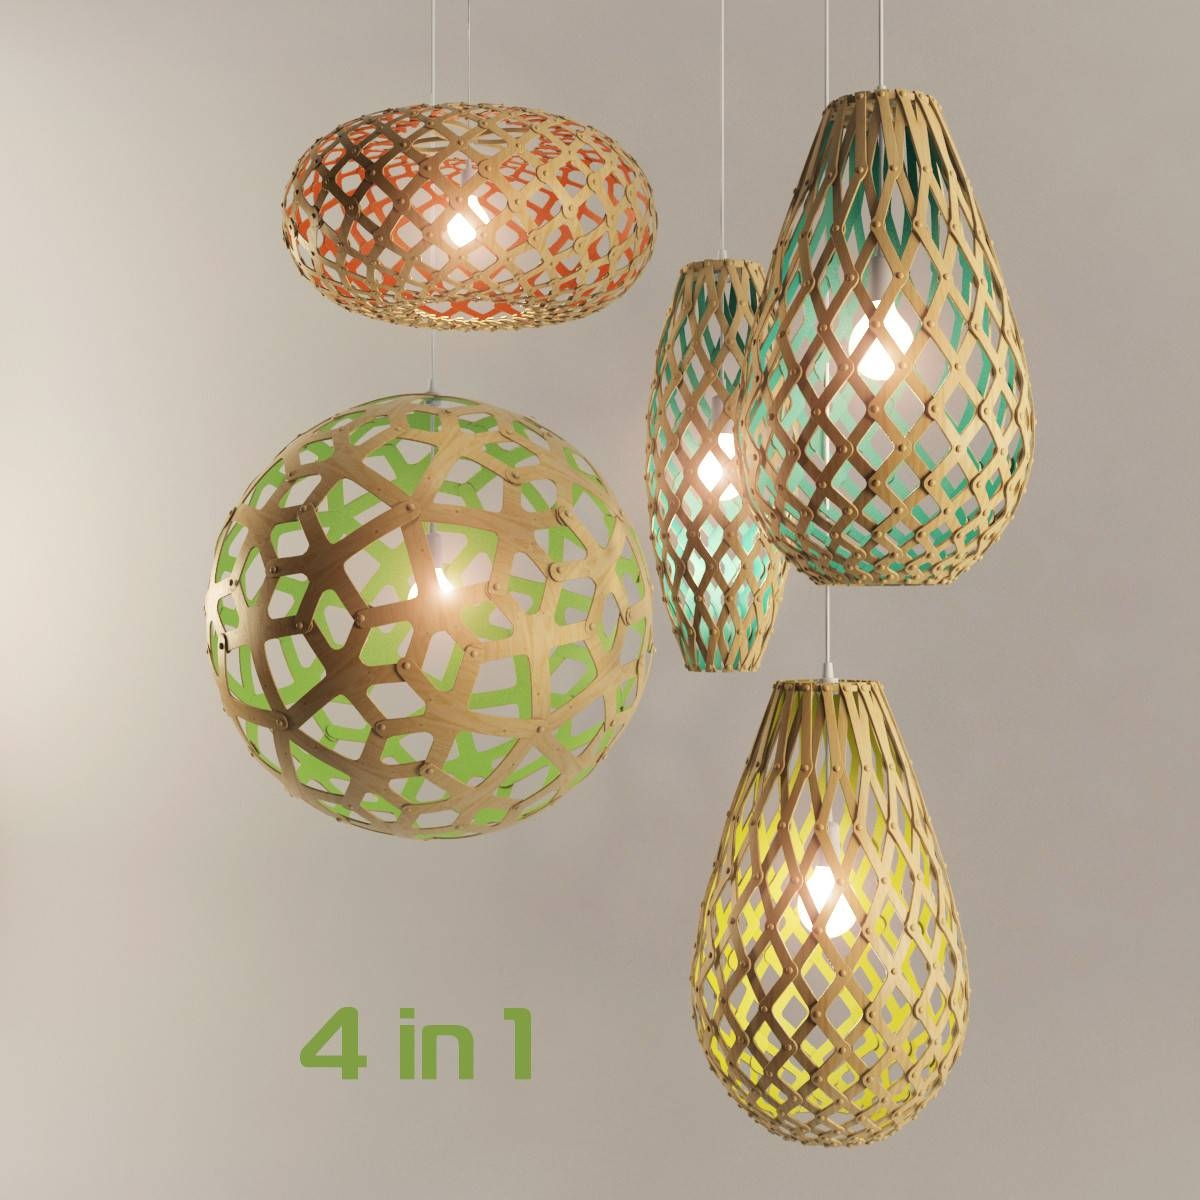 Lamp Vibia Stage 3D 3Ds in Coral Pendant Lights (Image 9 of 15)